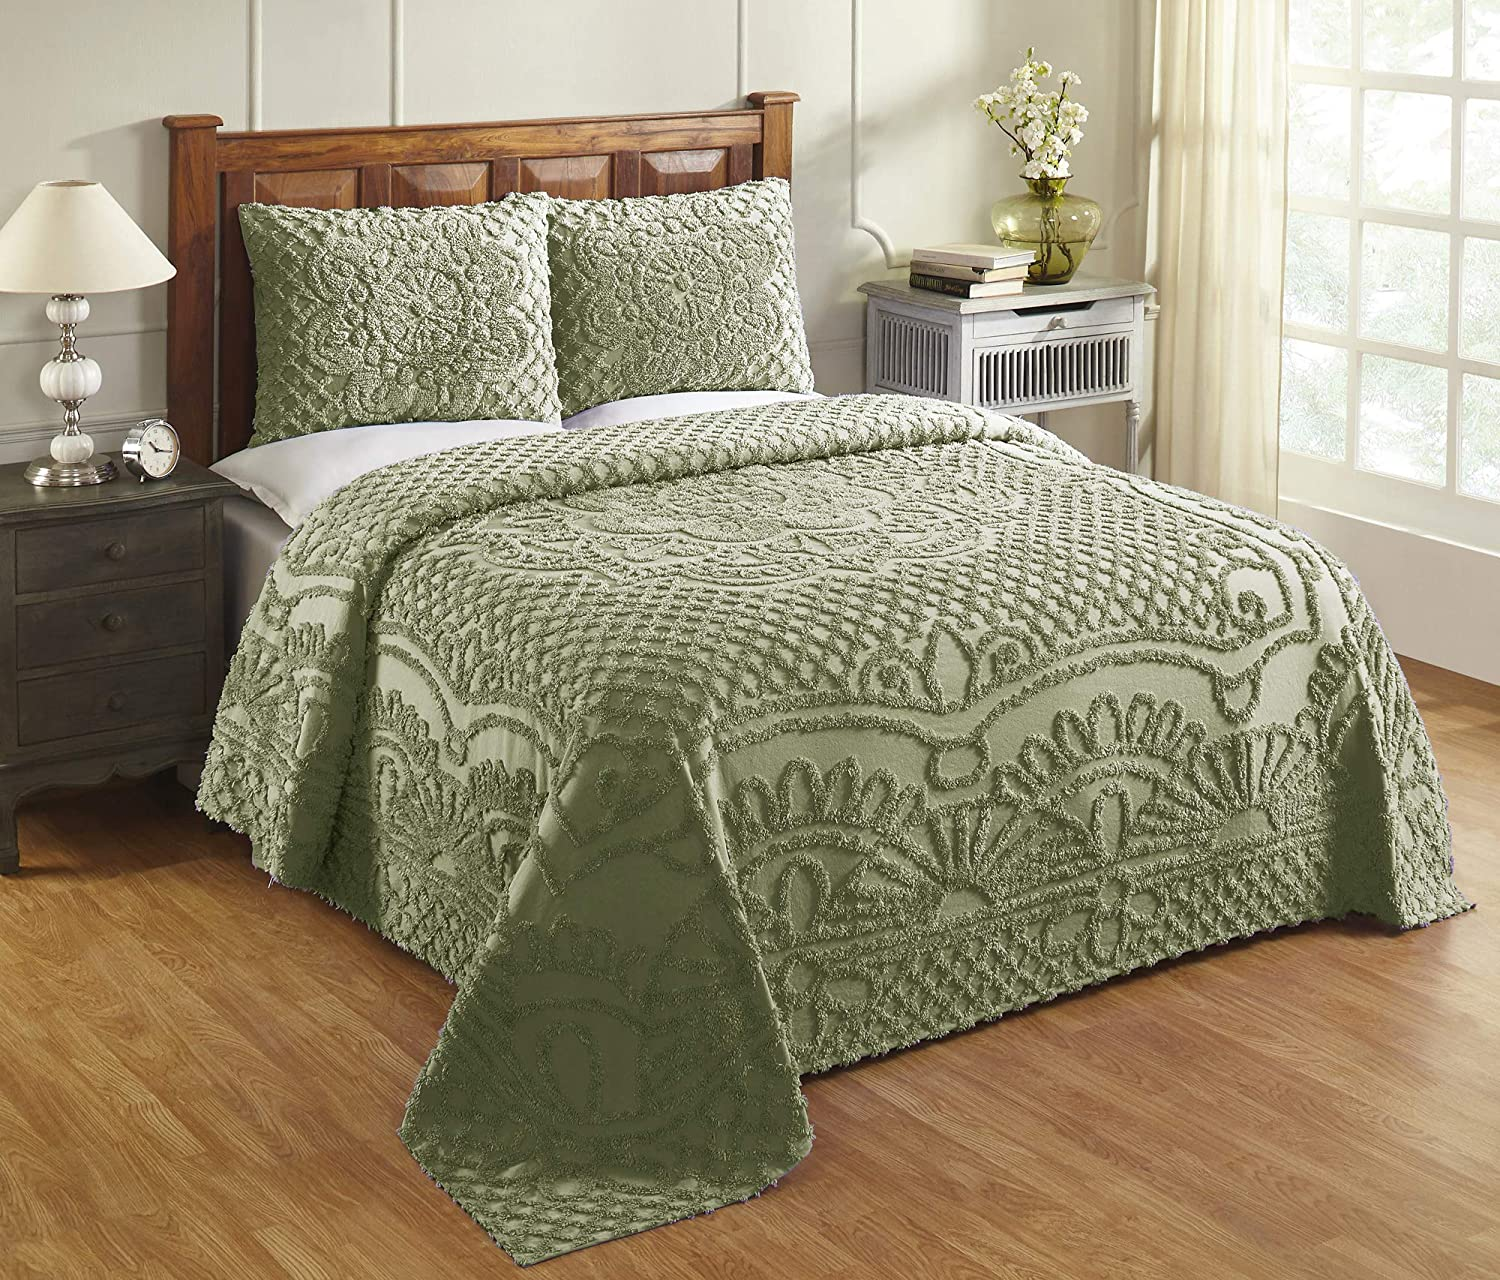 Better Trends Trevor Collection in Geometric Design 100% Cotton Tufted Chenille, King Bedspread Set, Sage